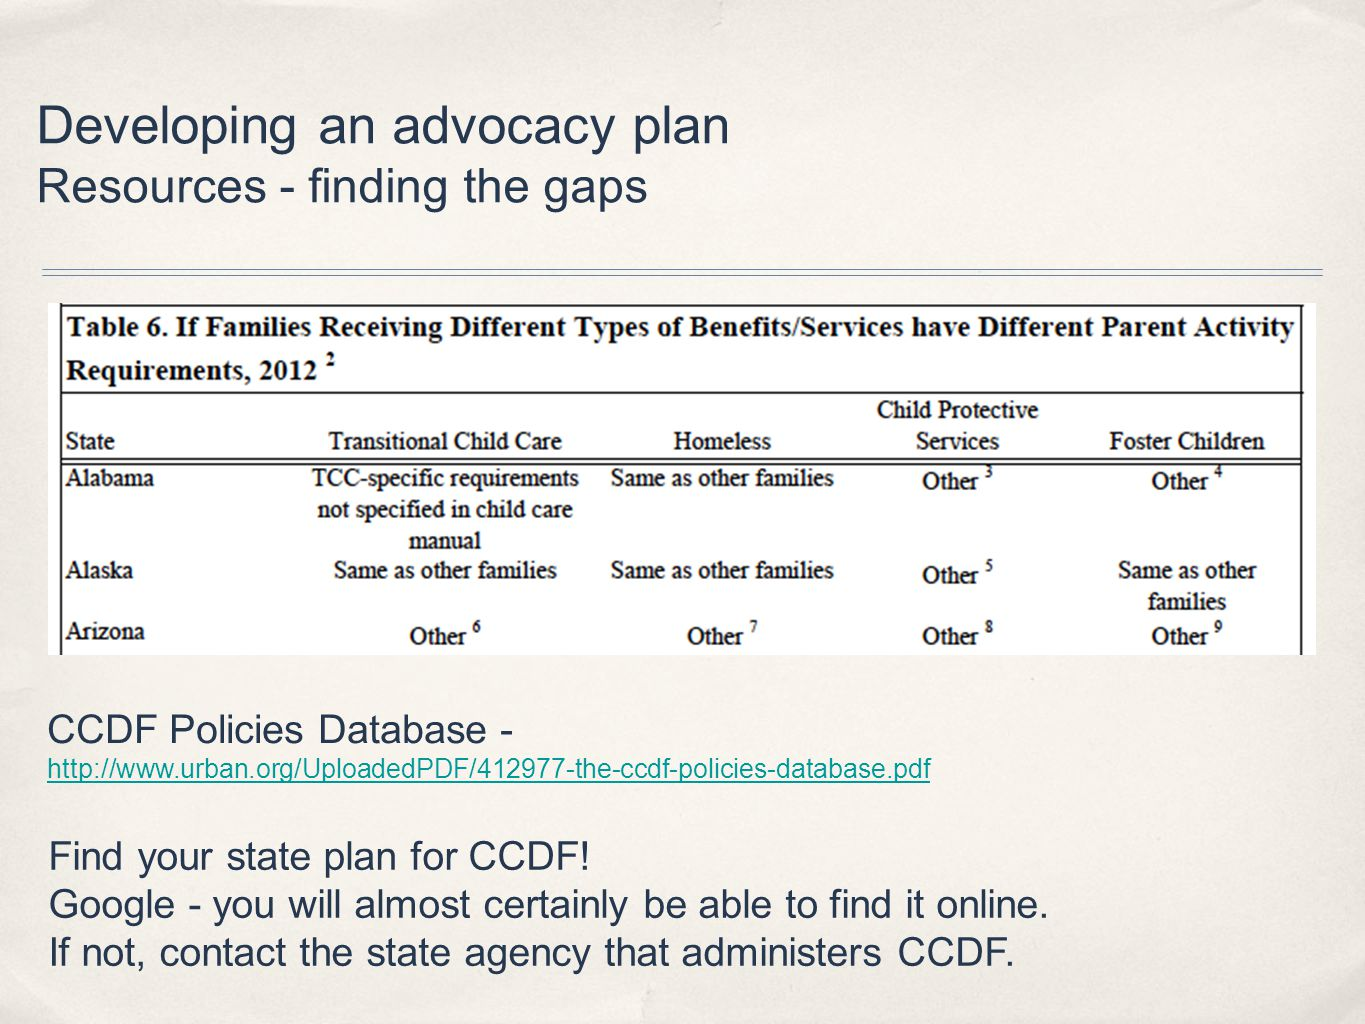 Developing an advocacy plan Resources - finding the gaps CCDF Policies Database - http://www.urban.org/UploadedPDF/412977-the-ccdf-policies-database.pdf http://www.urban.org/UploadedPDF/412977-the-ccdf-policies-database.pdf Find your state plan for CCDF.